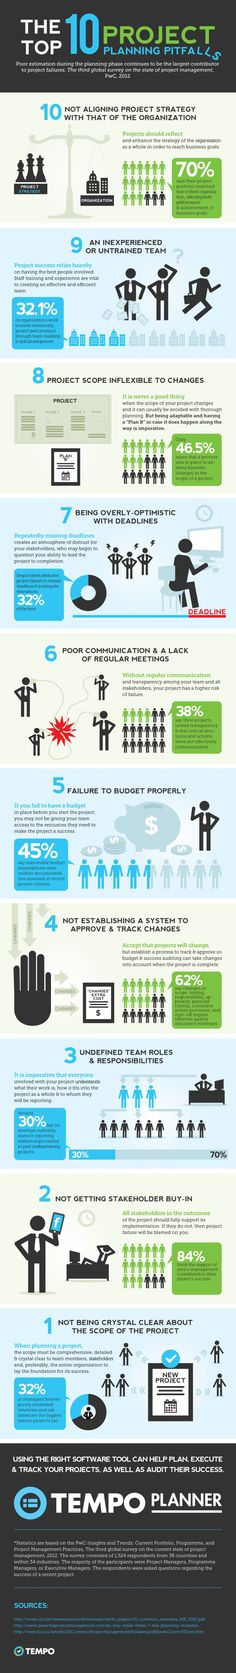 Infographic Ideas infographic proposal template : Business Proposal Templates Examples | Business Proposal Template ...